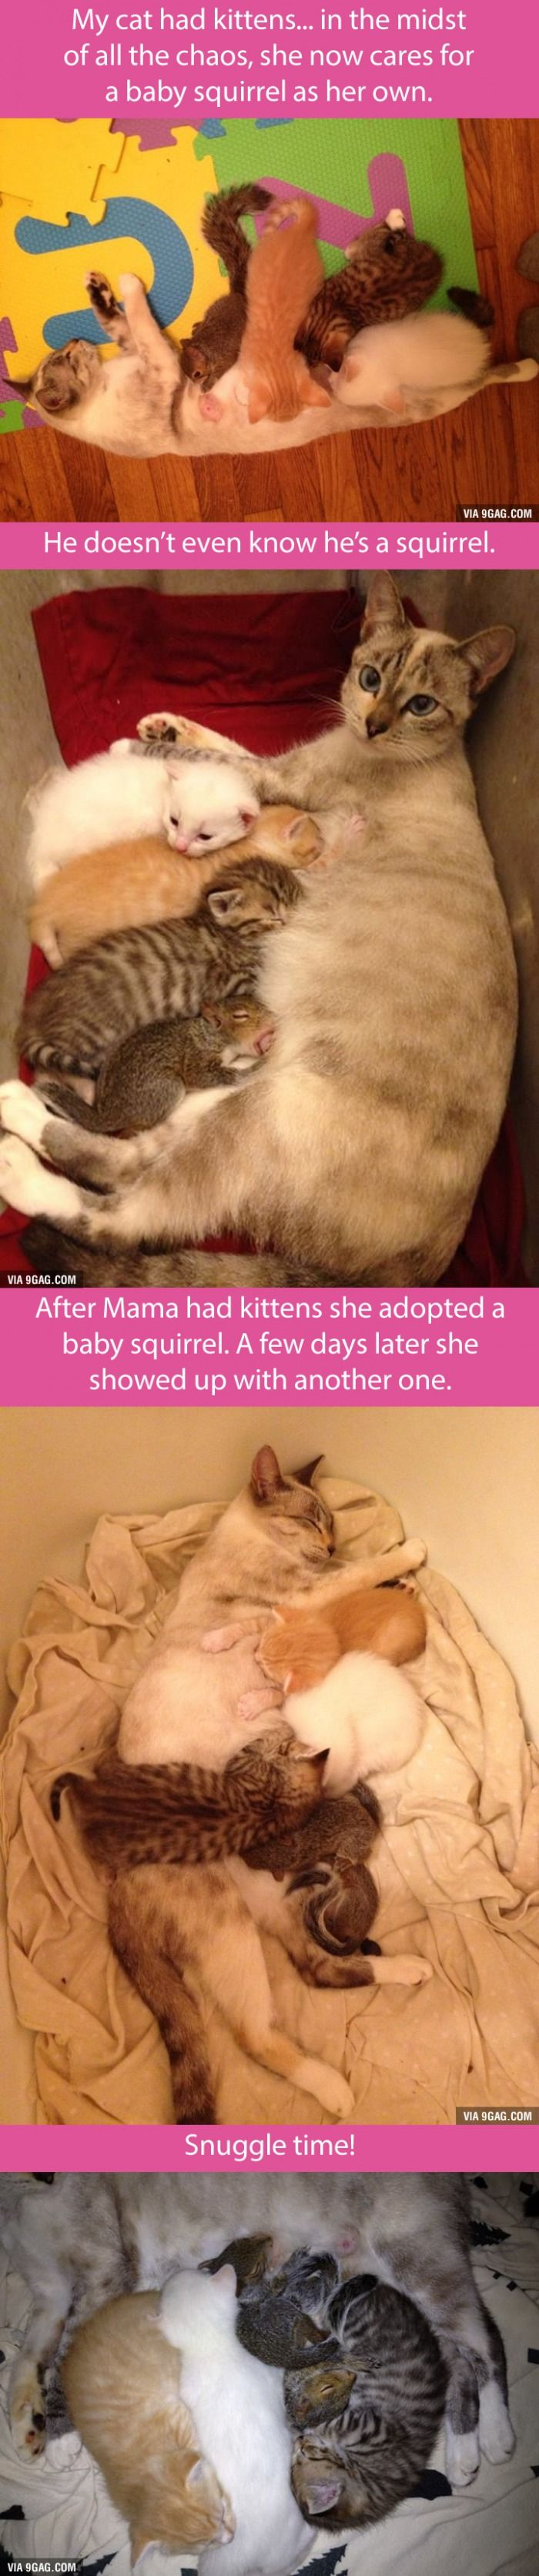 Mama Cat and her adopted squirrels... there are two now!: Cats, Baby Squirrels, Adopted Squirrels, Adopts Squirrel, Cat Adopts, Mama Cat, Kitty, Animal